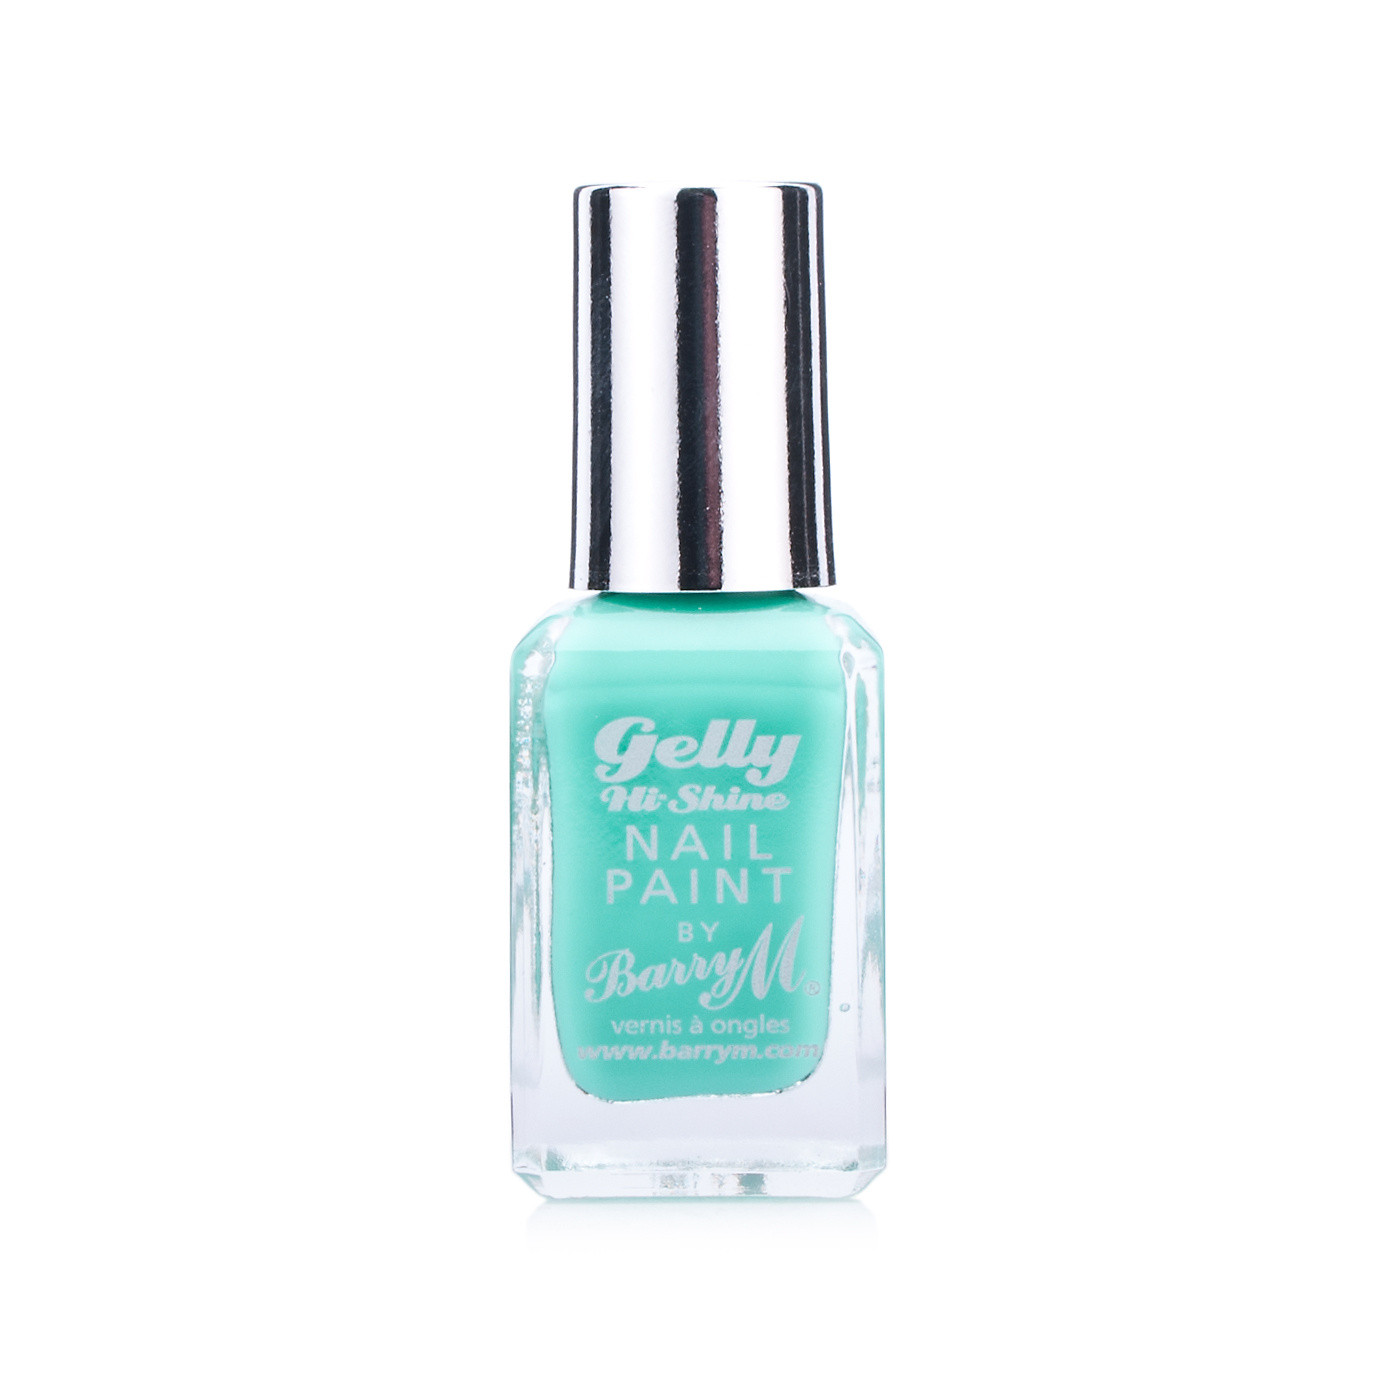 Barry M Gelly Hi Shine Nail Paint Green Berry